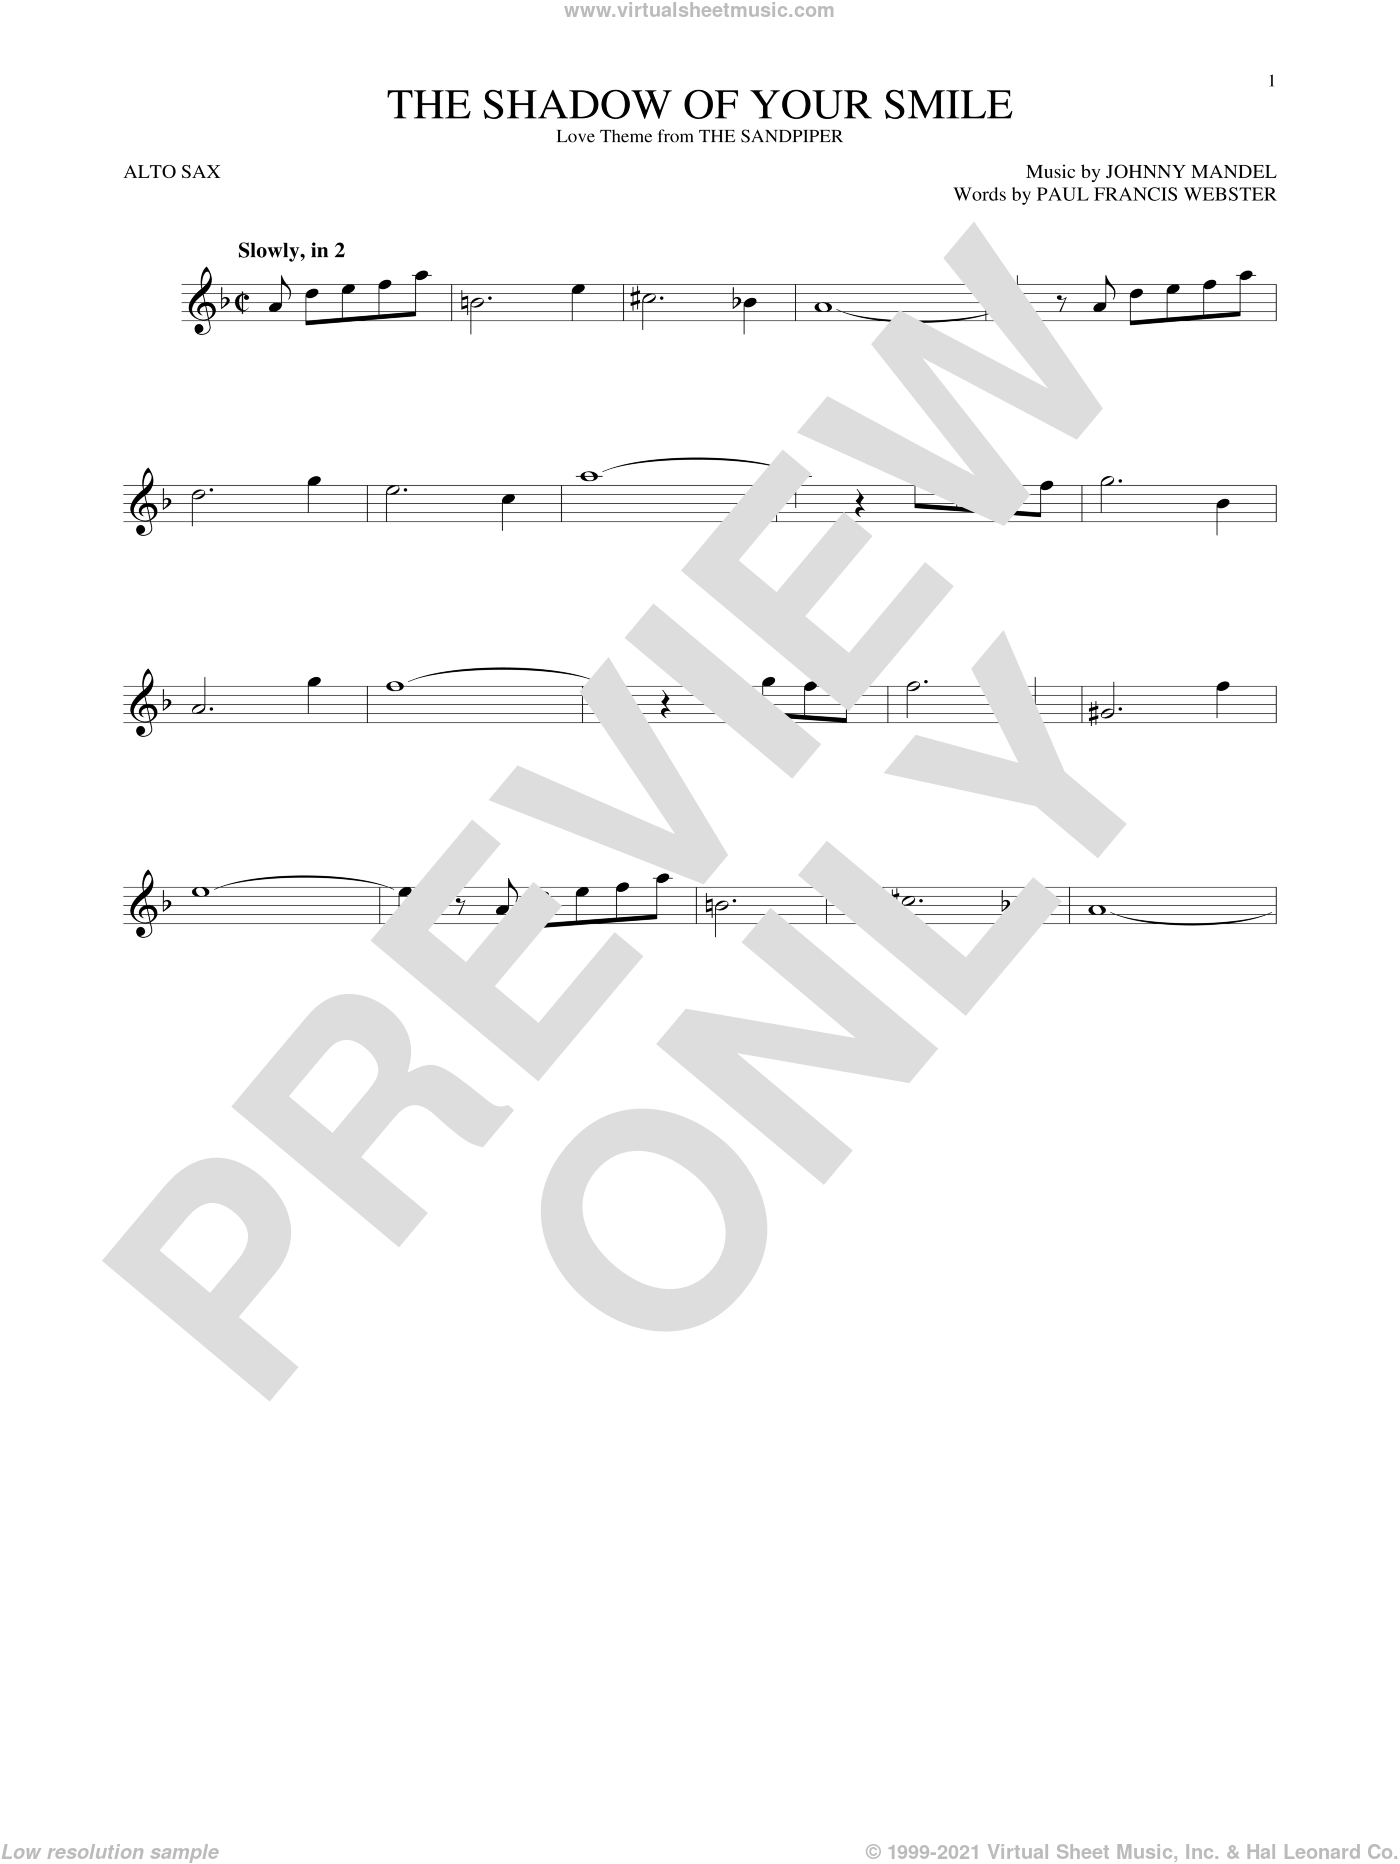 The Shadow Of Your Smile sheet music for alto saxophone solo by Paul Francis Webster and Johnny Mandel, intermediate skill level